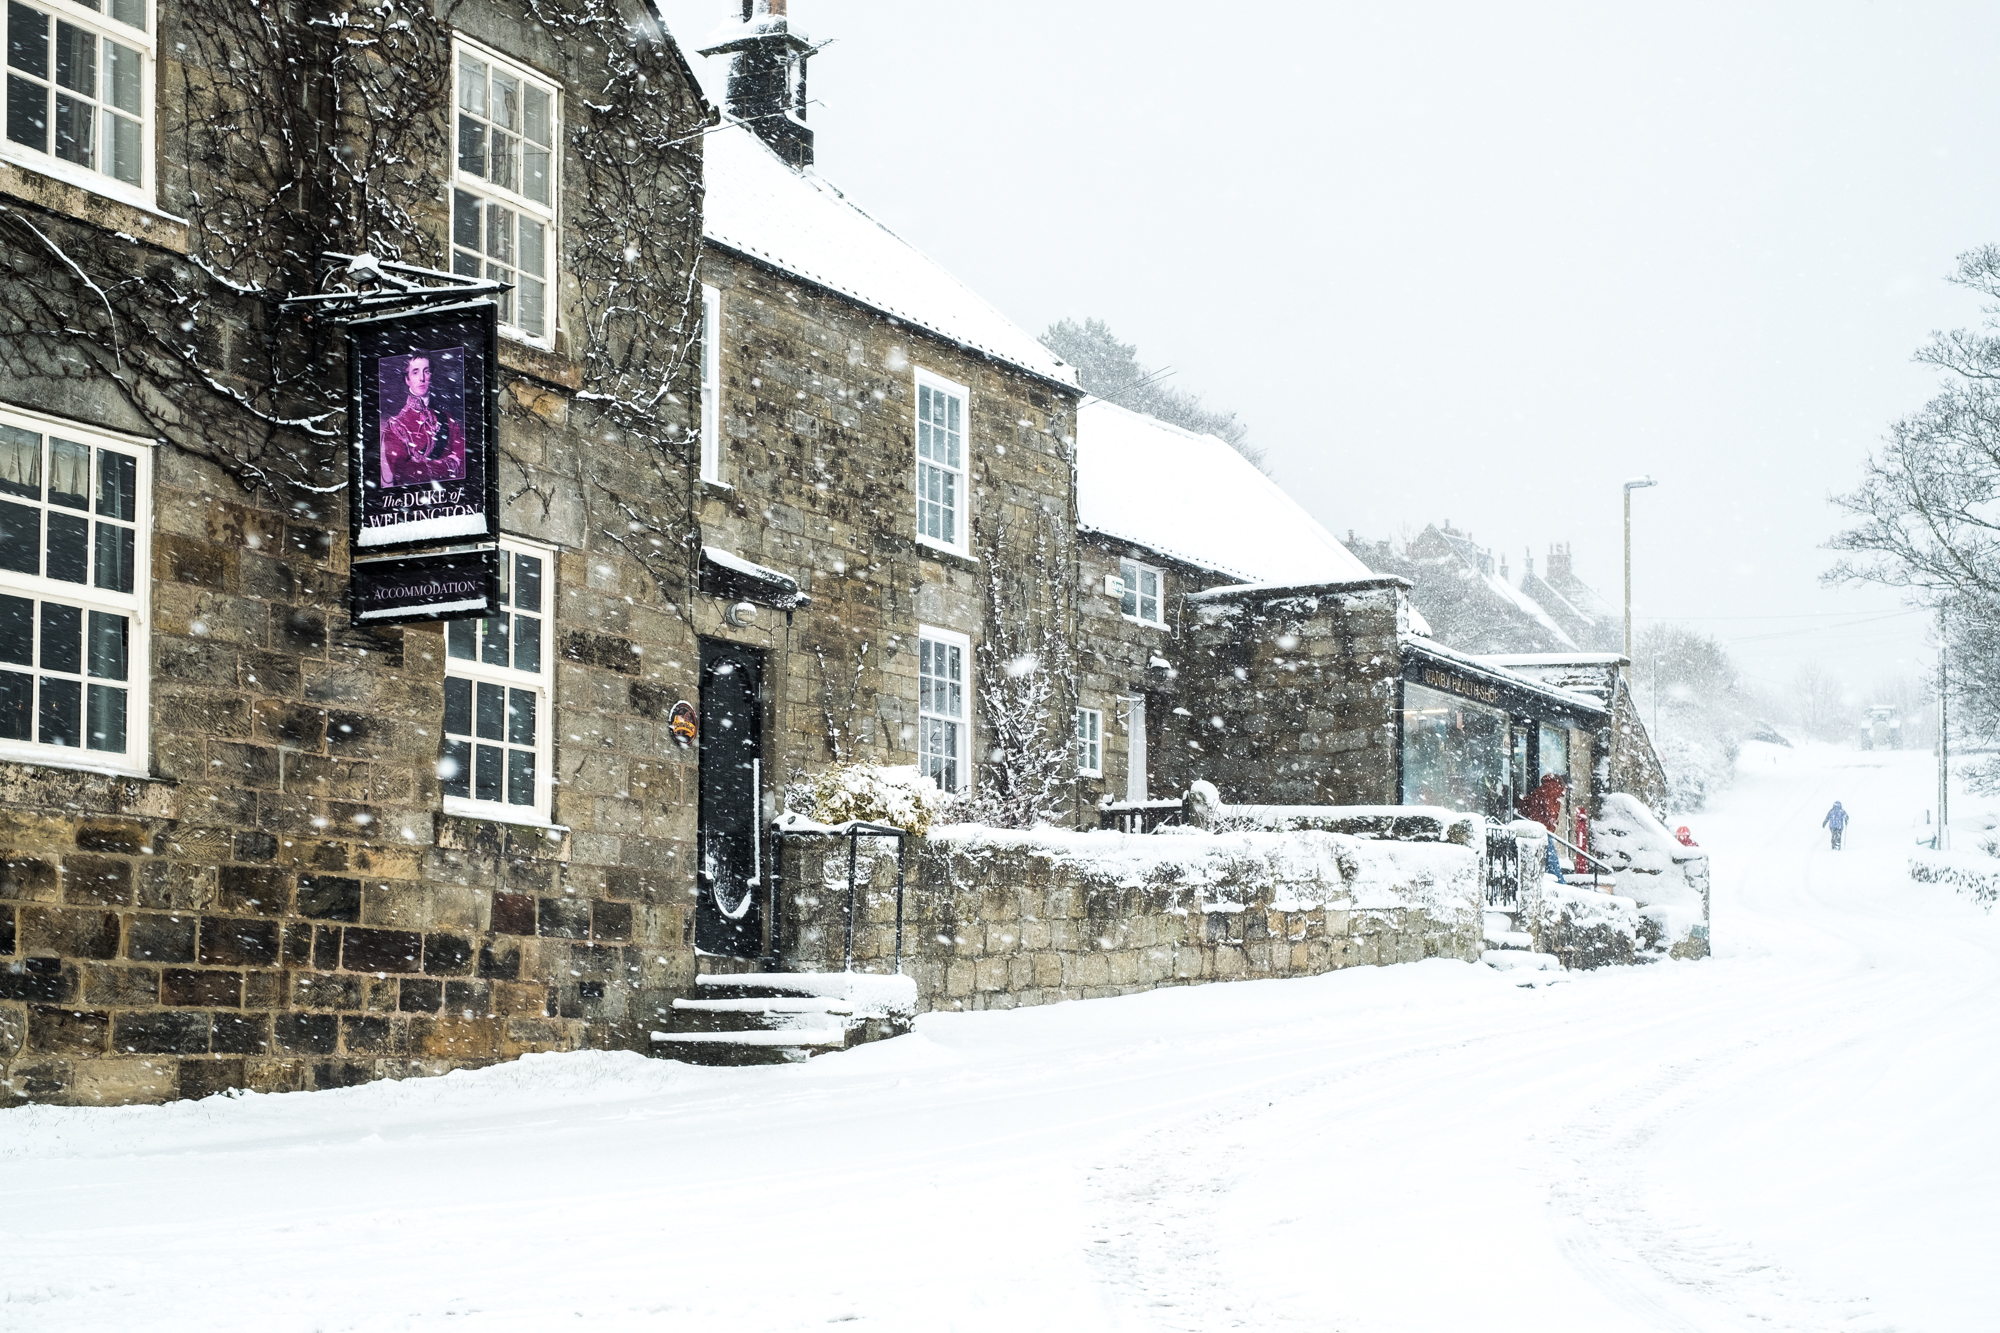 Heavy Snow In Danby Village - Yorkshire Christmas Card A5 - Whitby ...